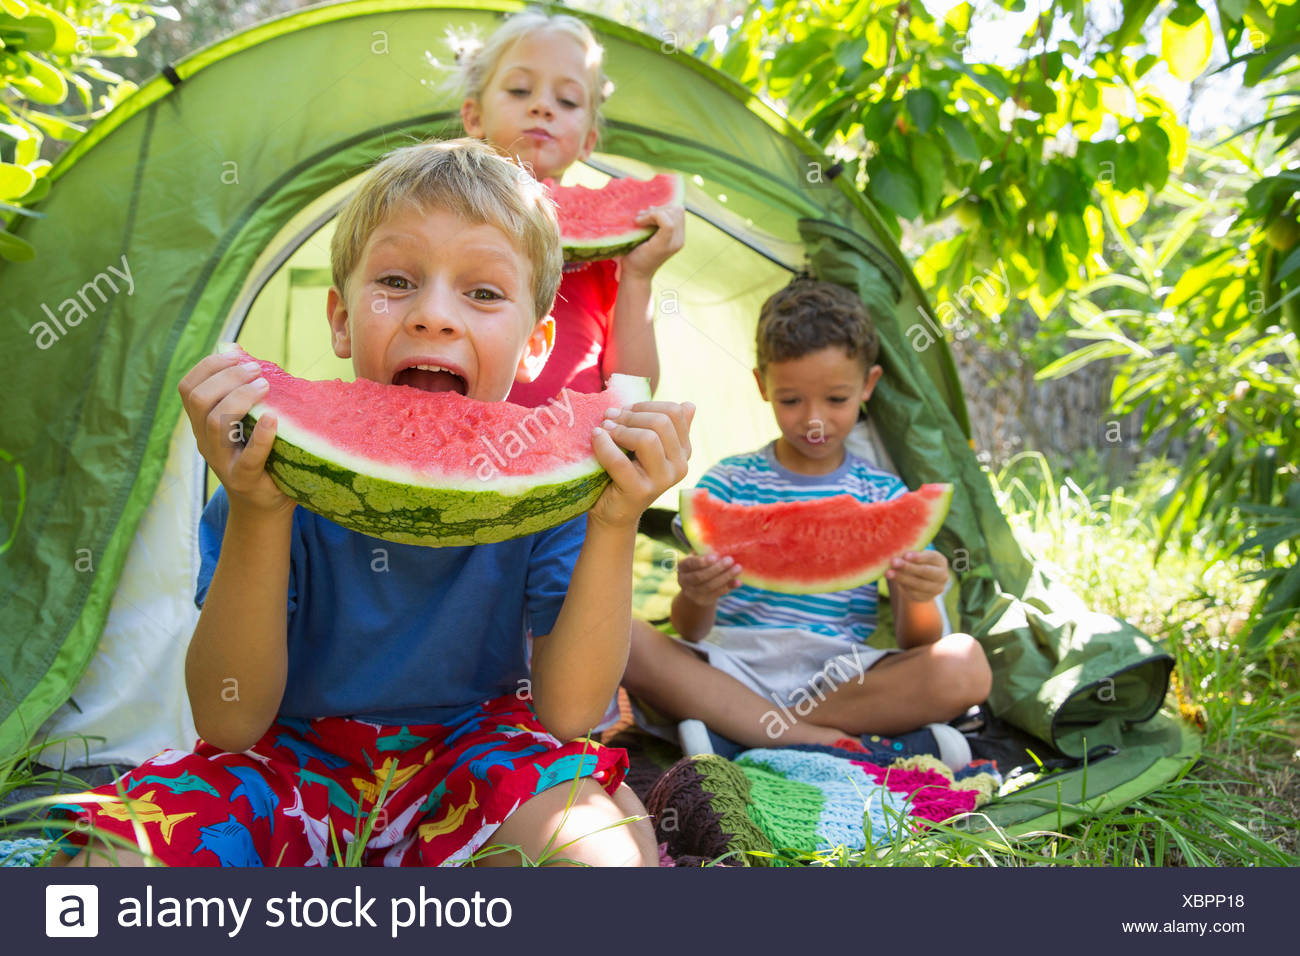 Three children eating large watermelon slices in garden tent - Stock Image